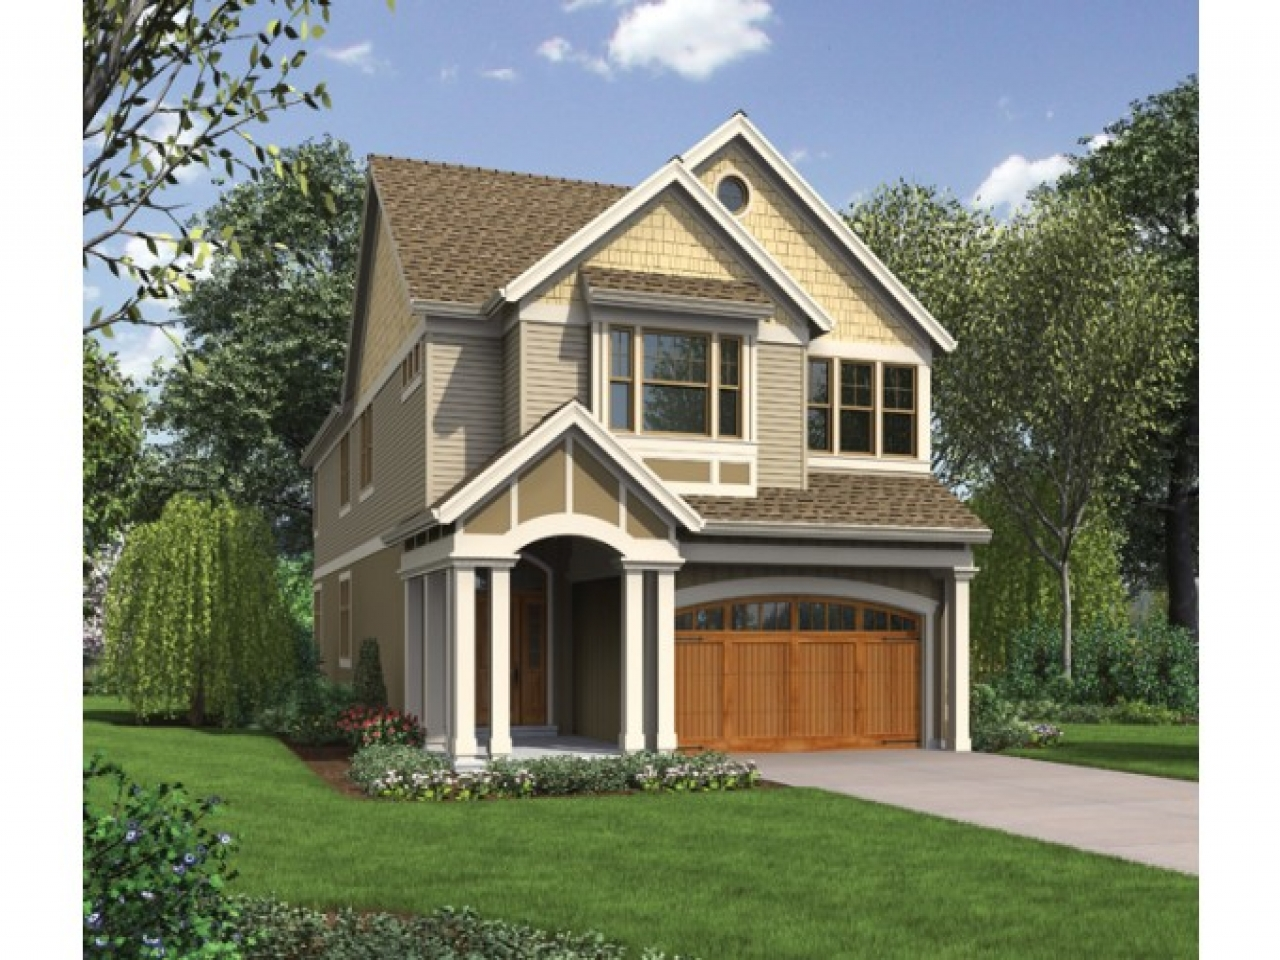 Narrow lot house plans with front garage narrow lot house for Narrow lot house plans with garage